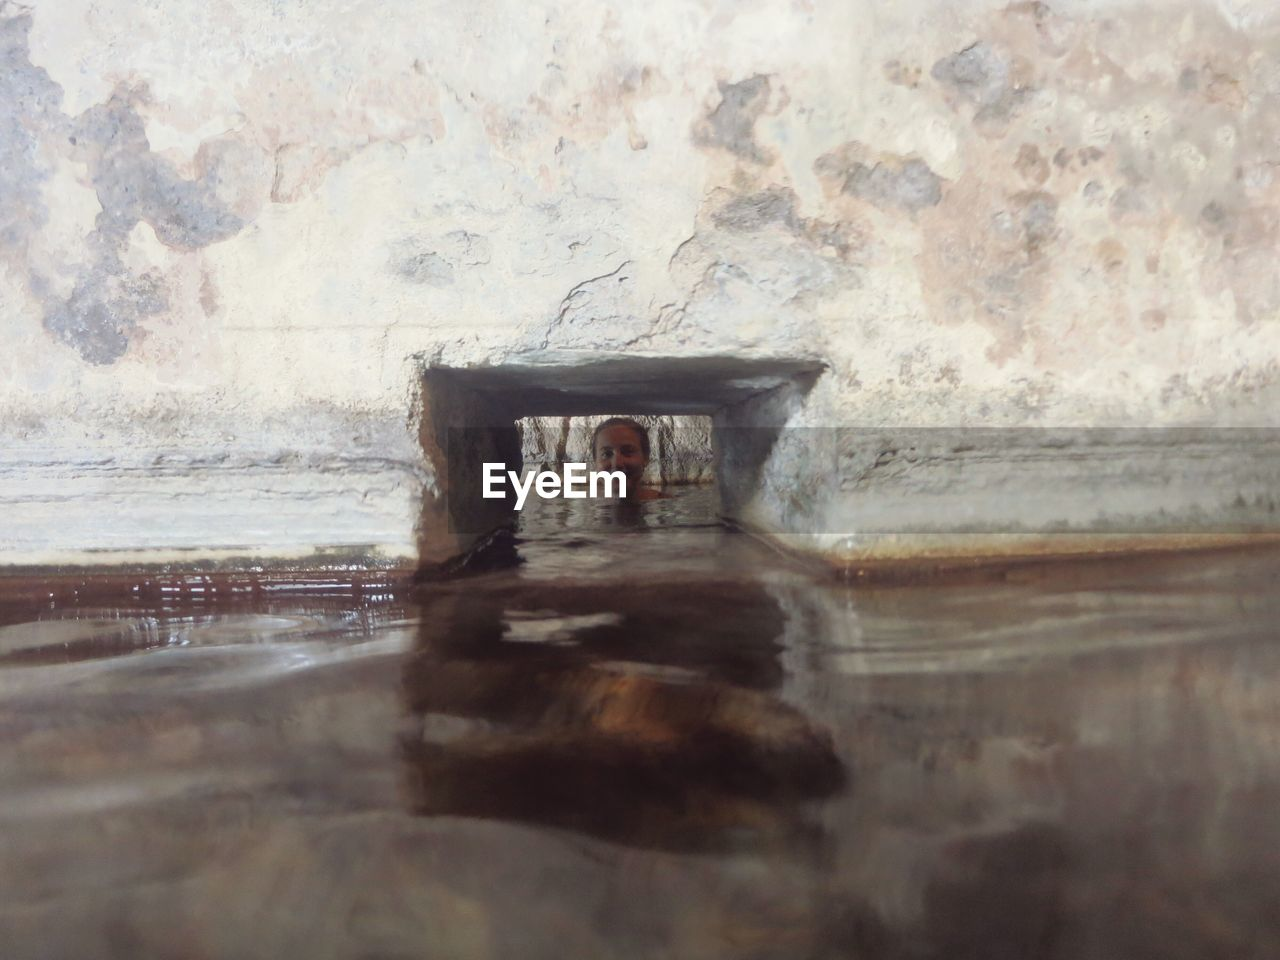 Portrait of woman seen through hole on wall in hot spring